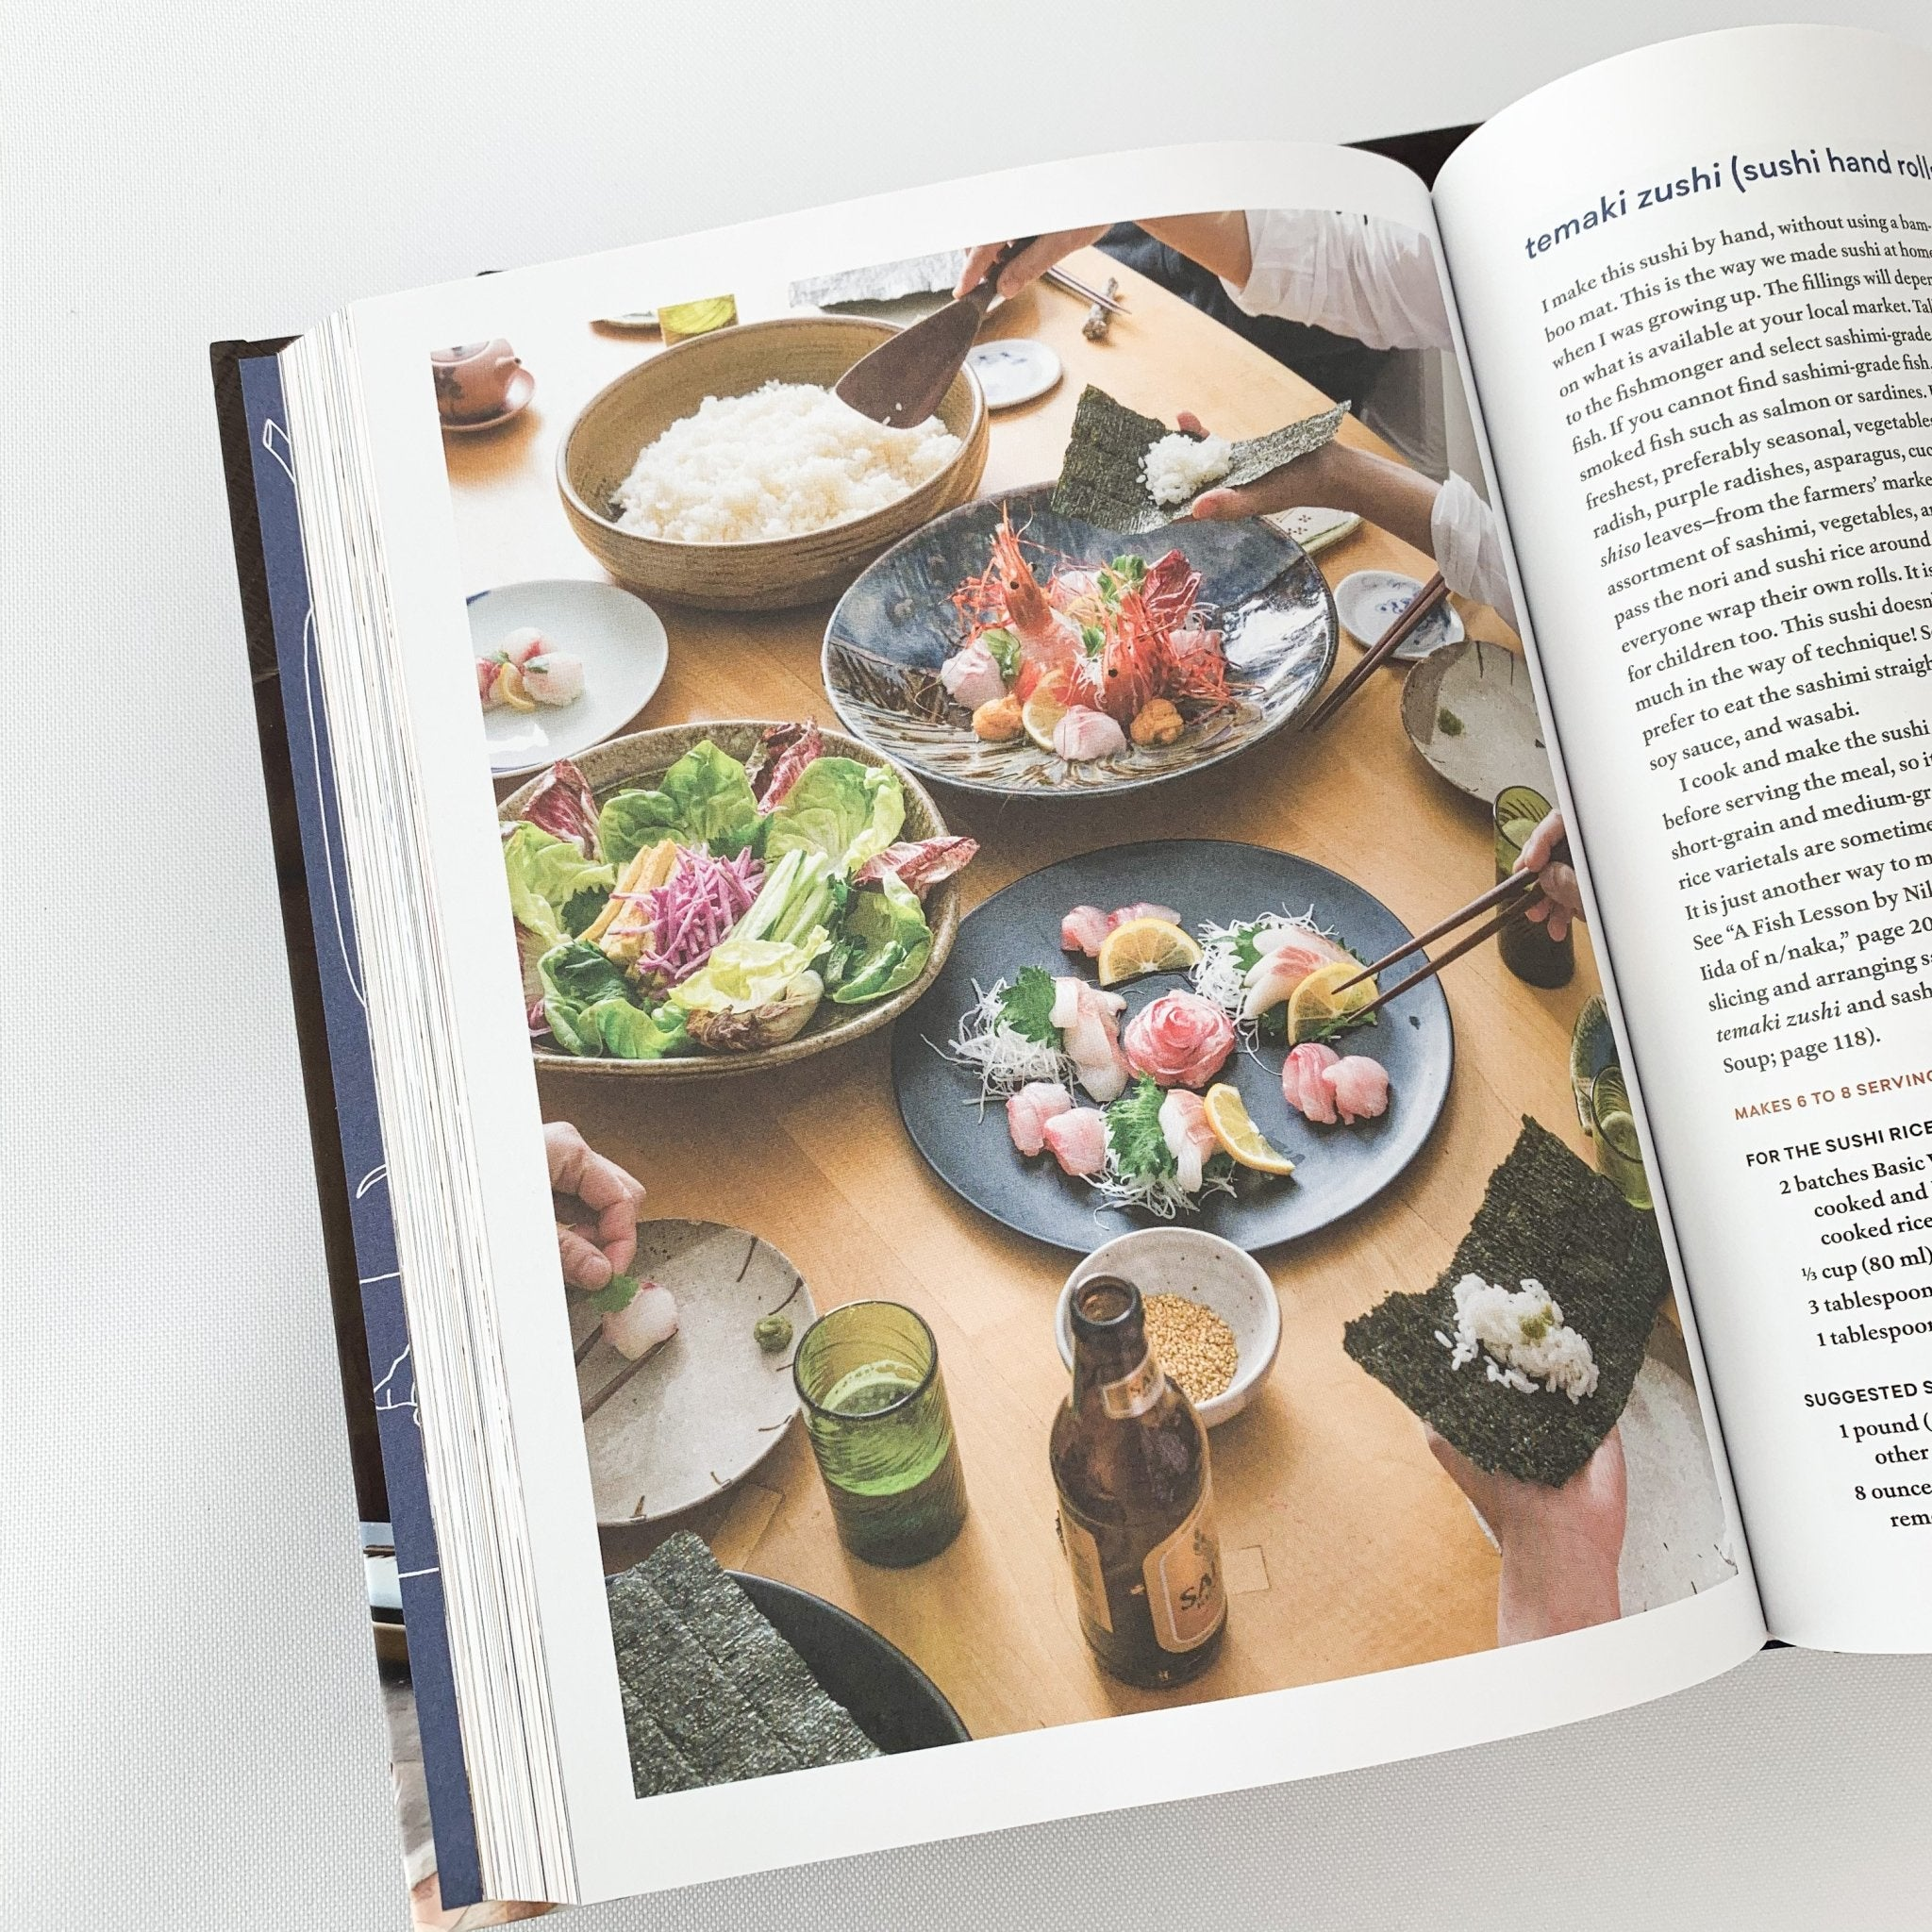 Japanese Home Cooking: Simple Meals, Authentic Flavors by Sonoko Sakai - tortoise general store